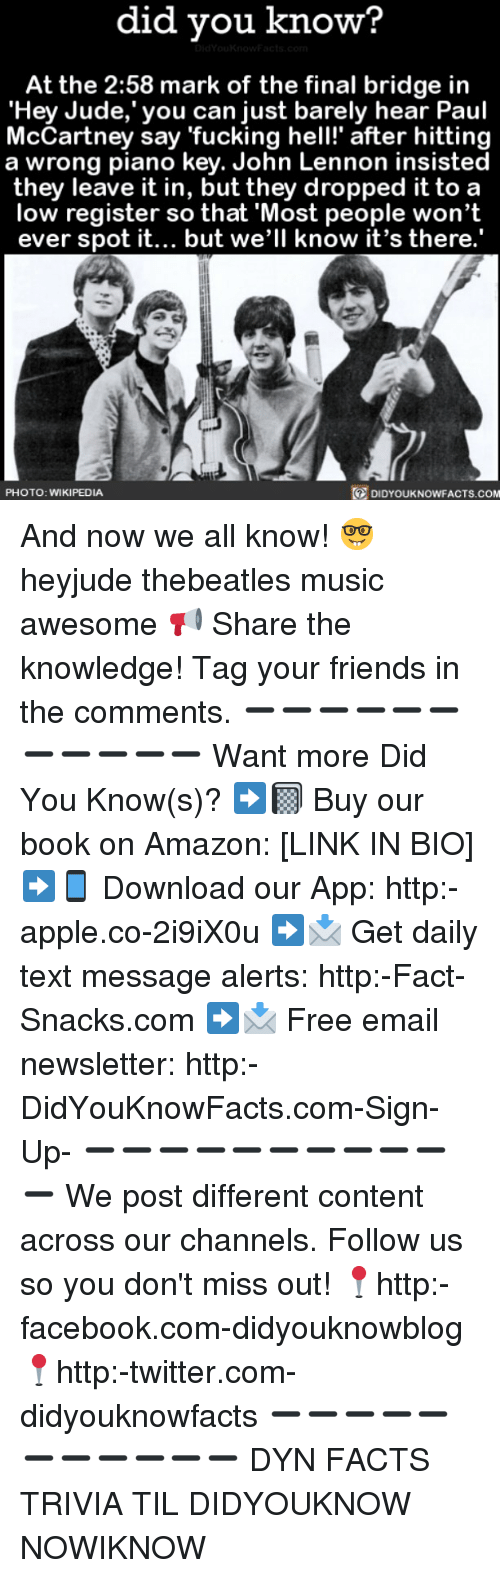 """Amazon, Apple, and Facebook: did you know?  At the 2:58 mark of the final bridge in  """"Hey Jude, you can just barely hear Paul  McCartney say fucking hell!"""" after hitting  a wrong piano key. John Lennon insisted  they leave it in, but they dropped it to a  low register so that Most people won't  ever spot it... but we'll know it's there.  PHOTO: WIKIPEDIA  DIDYOUKNOWFACTS.COM And now we all know! 🤓 heyjude thebeatles music awesome 📢 Share the knowledge! Tag your friends in the comments. ➖➖➖➖➖➖➖➖➖➖➖ Want more Did You Know(s)? ➡📓 Buy our book on Amazon: [LINK IN BIO] ➡📱 Download our App: http:-apple.co-2i9iX0u ➡📩 Get daily text message alerts: http:-Fact-Snacks.com ➡📩 Free email newsletter: http:-DidYouKnowFacts.com-Sign-Up- ➖➖➖➖➖➖➖➖➖➖➖ We post different content across our channels. Follow us so you don't miss out! 📍http:-facebook.com-didyouknowblog 📍http:-twitter.com-didyouknowfacts ➖➖➖➖➖➖➖➖➖➖➖ DYN FACTS TRIVIA TIL DIDYOUKNOW NOWIKNOW"""